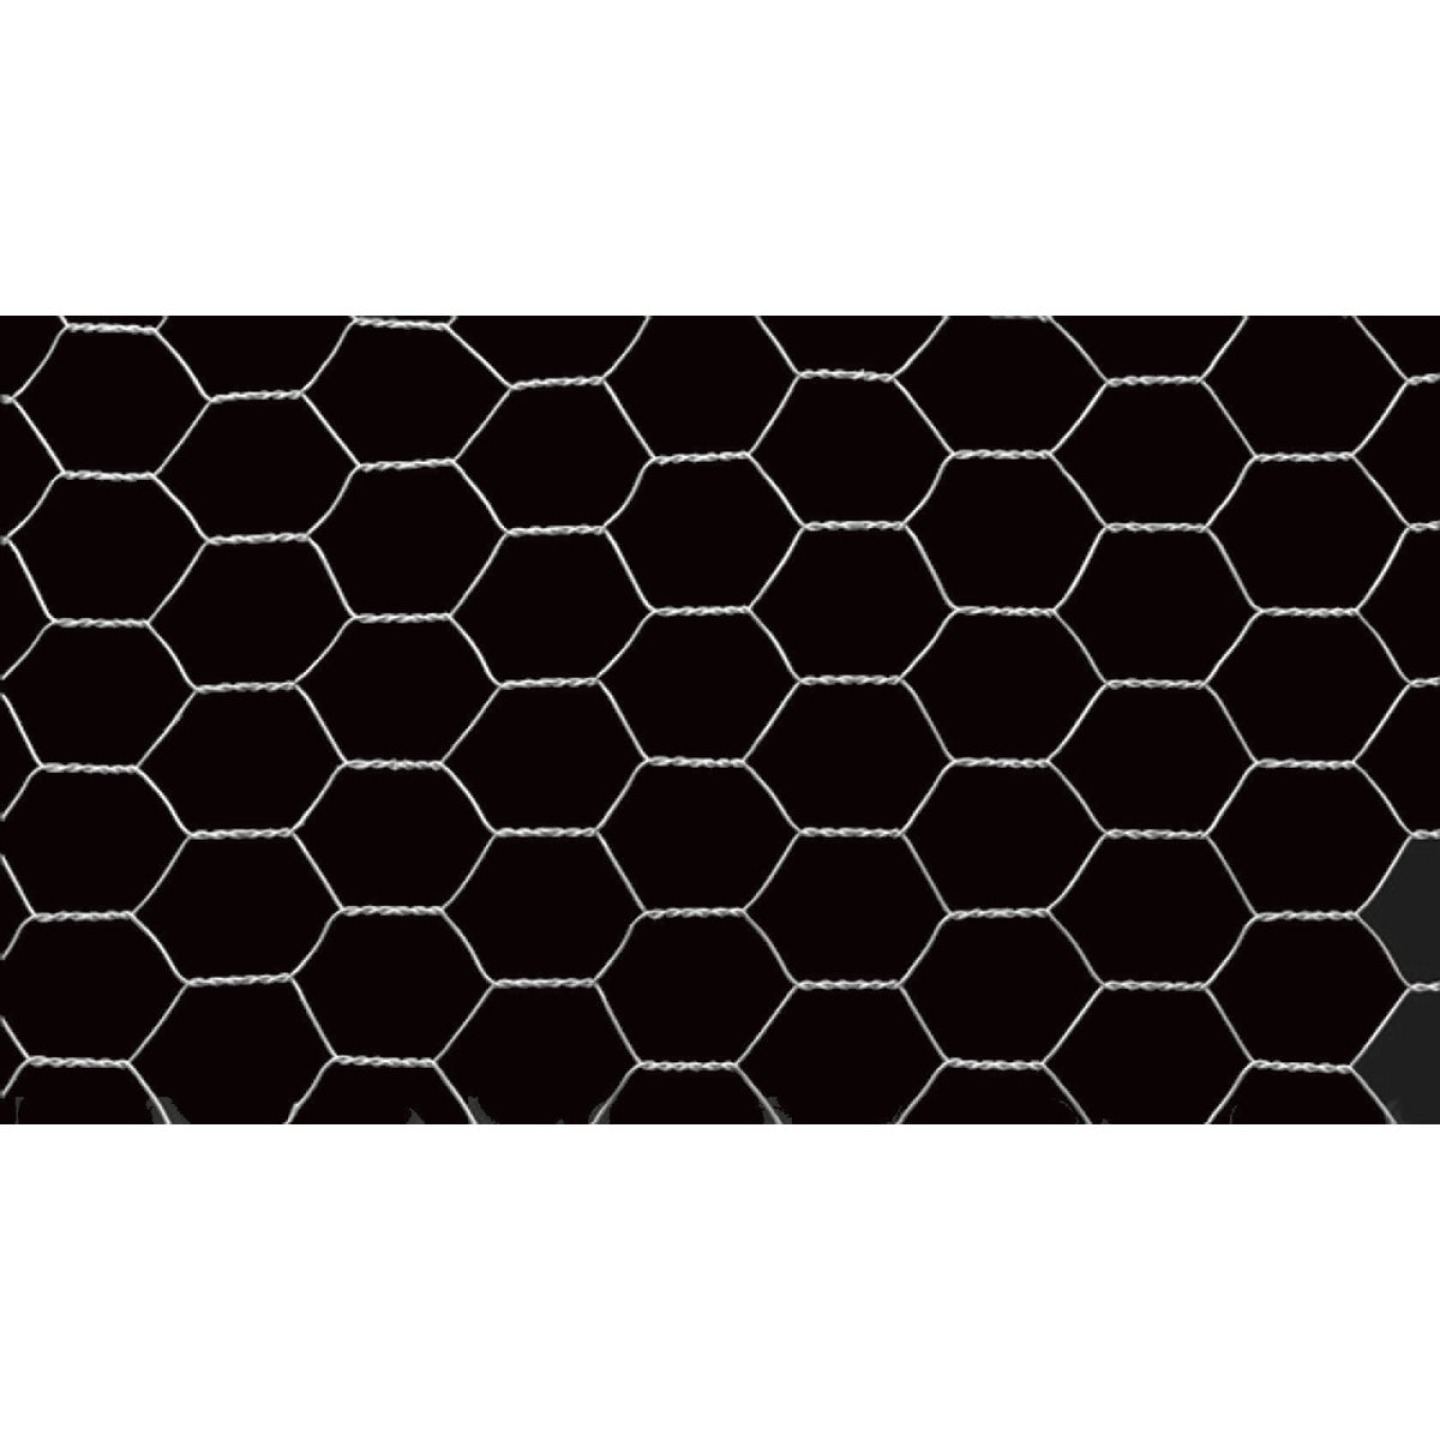 1/2 In. x 48 In. H. x 25 Ft. L. Hexagonal Wire Poultry Netting Image 4